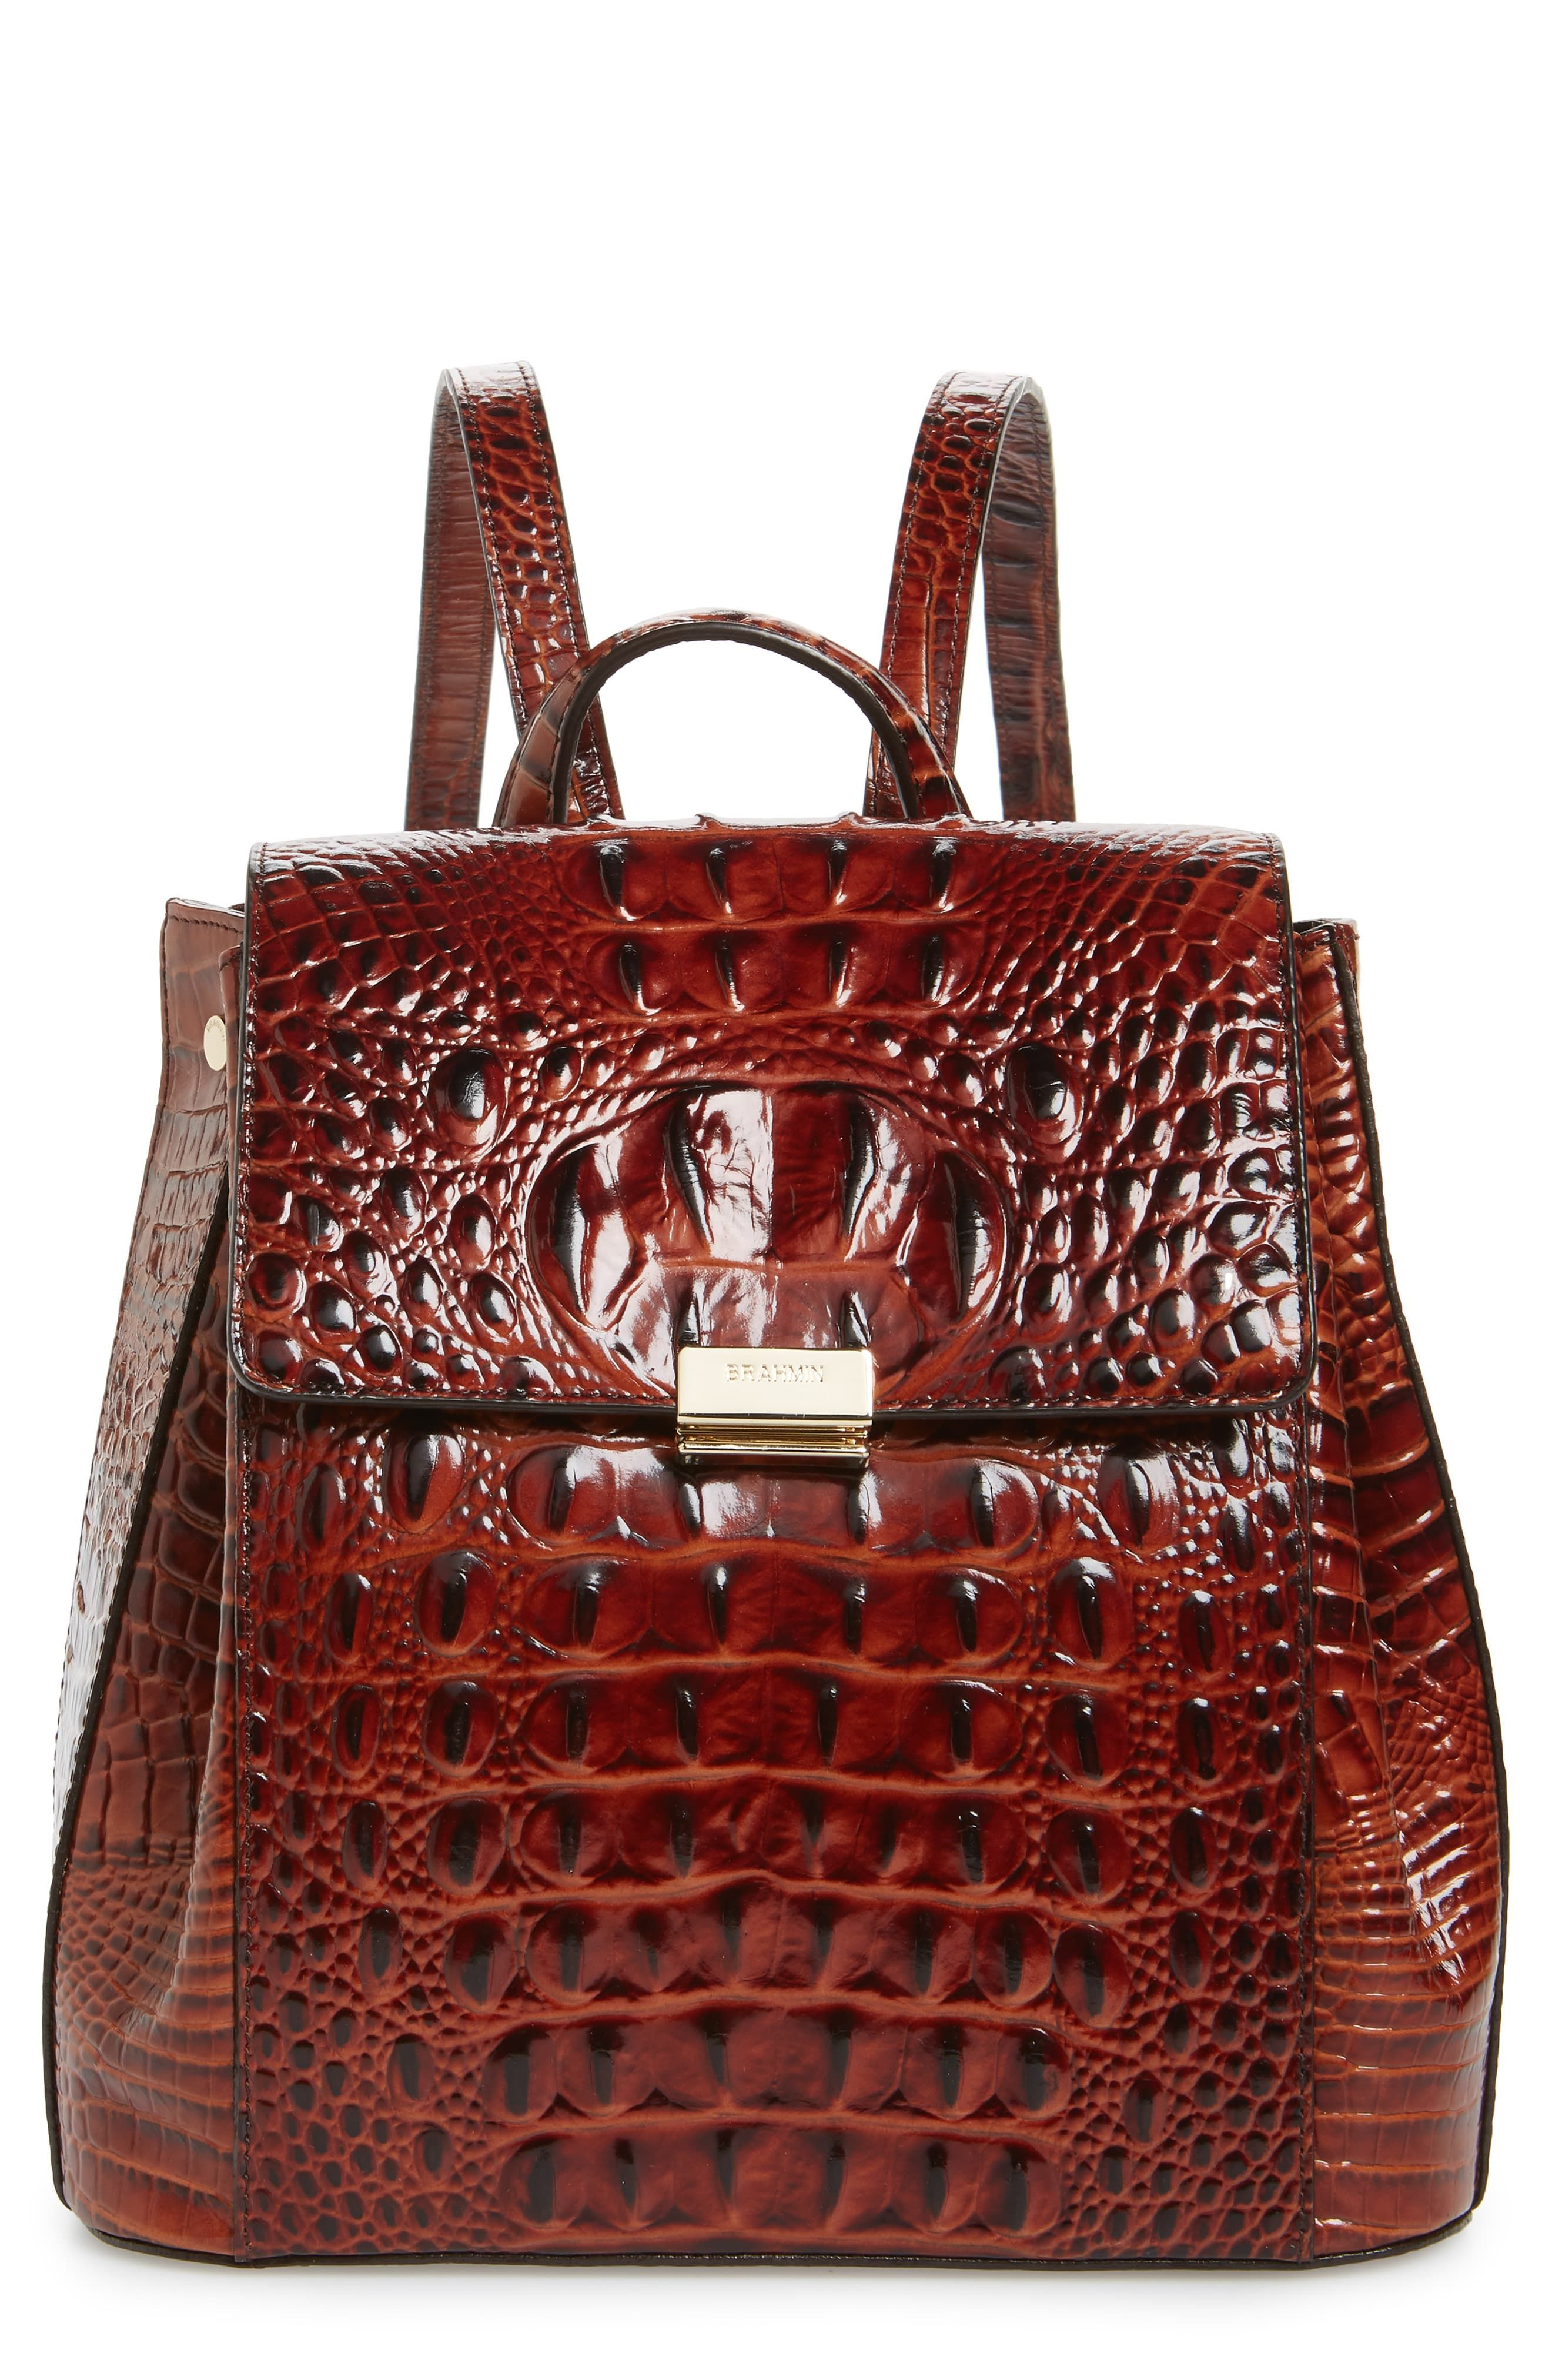 5bb167618 Brahmin Margo Croc Embossed Leather Backpack in 2019 | Products ...